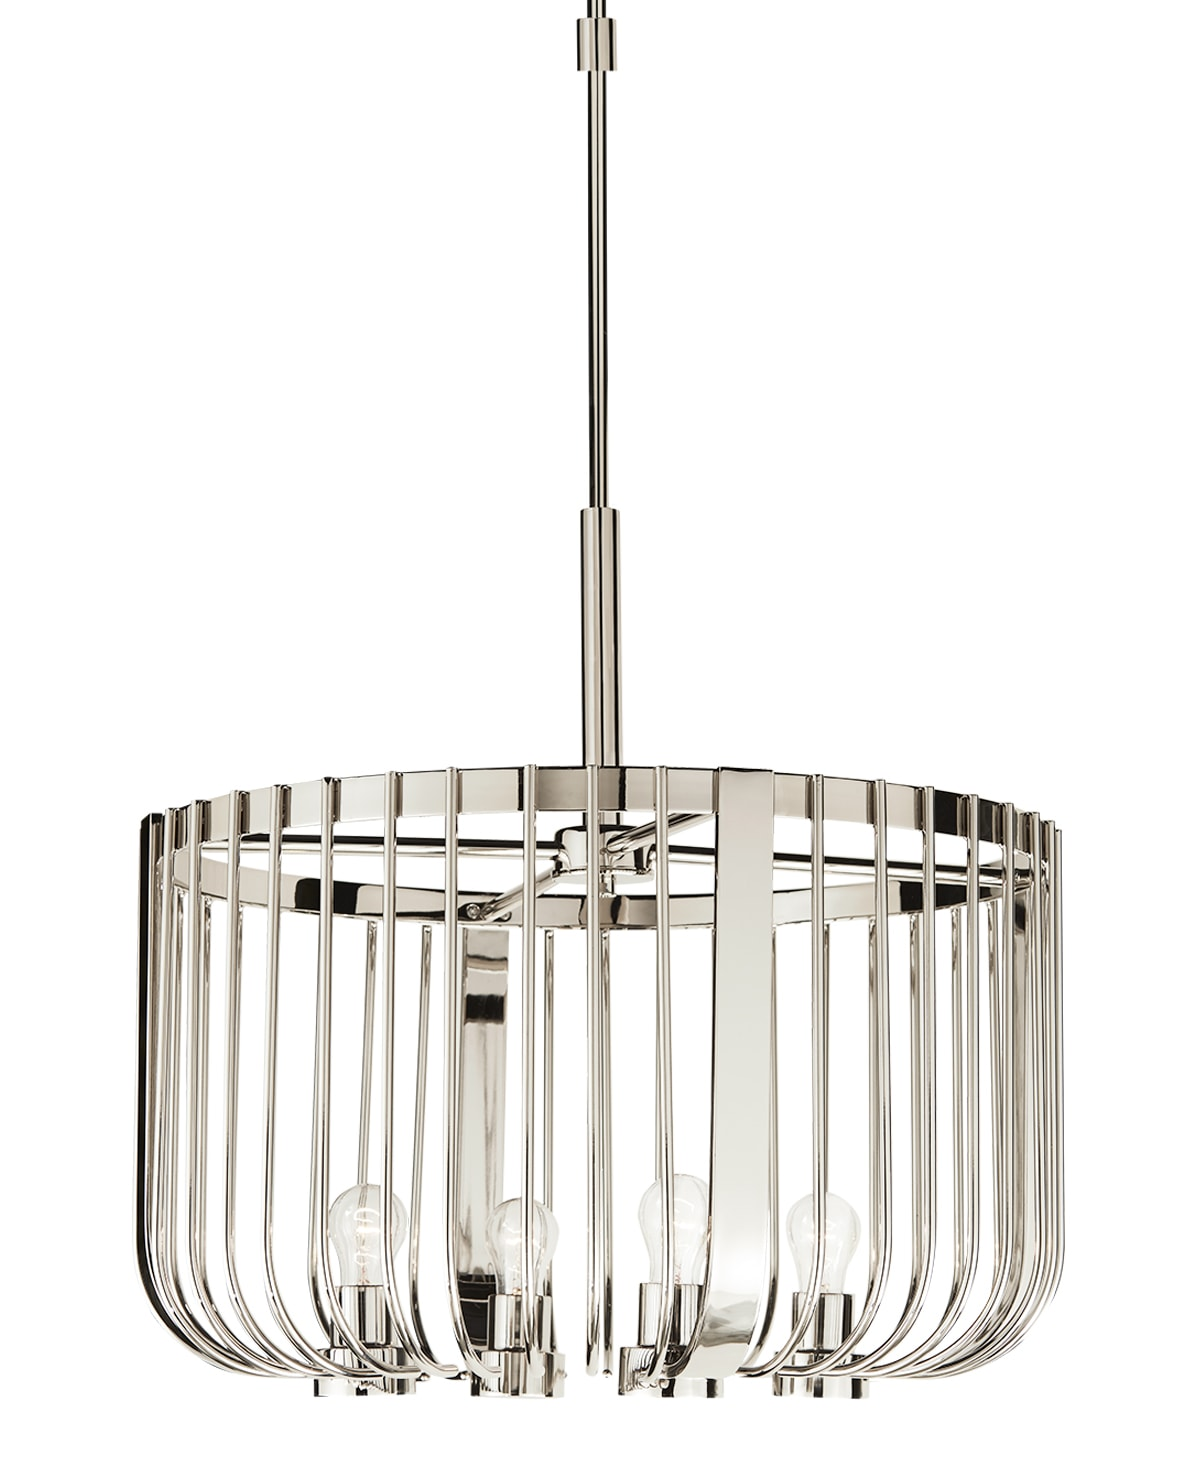 FlowDecor Norfolk Chandelier in polished stainless steel (# 6040)